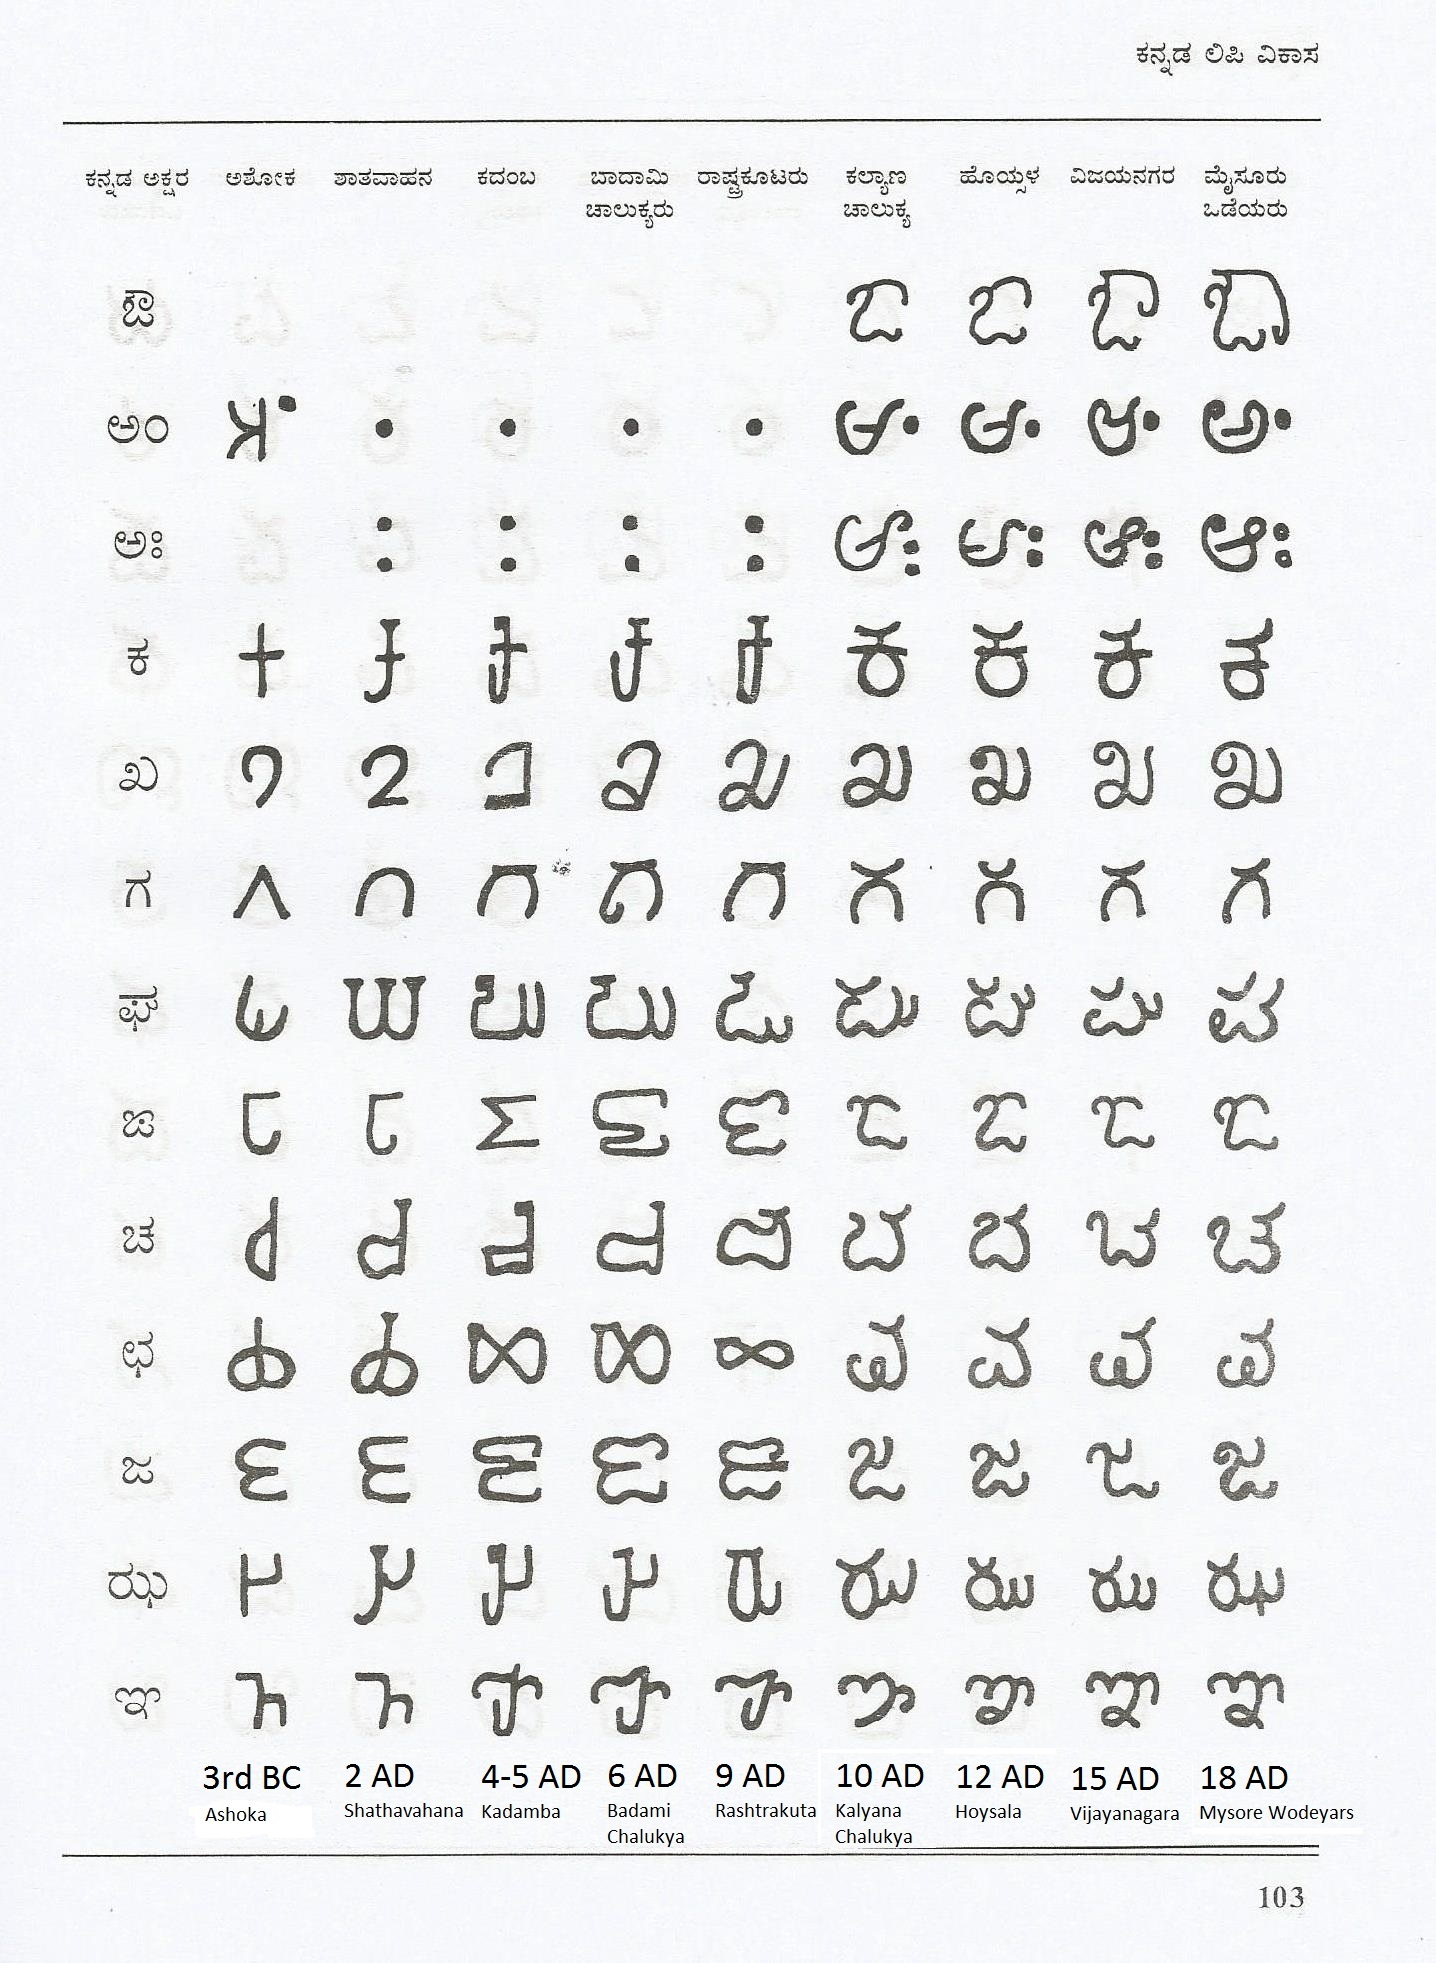 sa writing in kannada